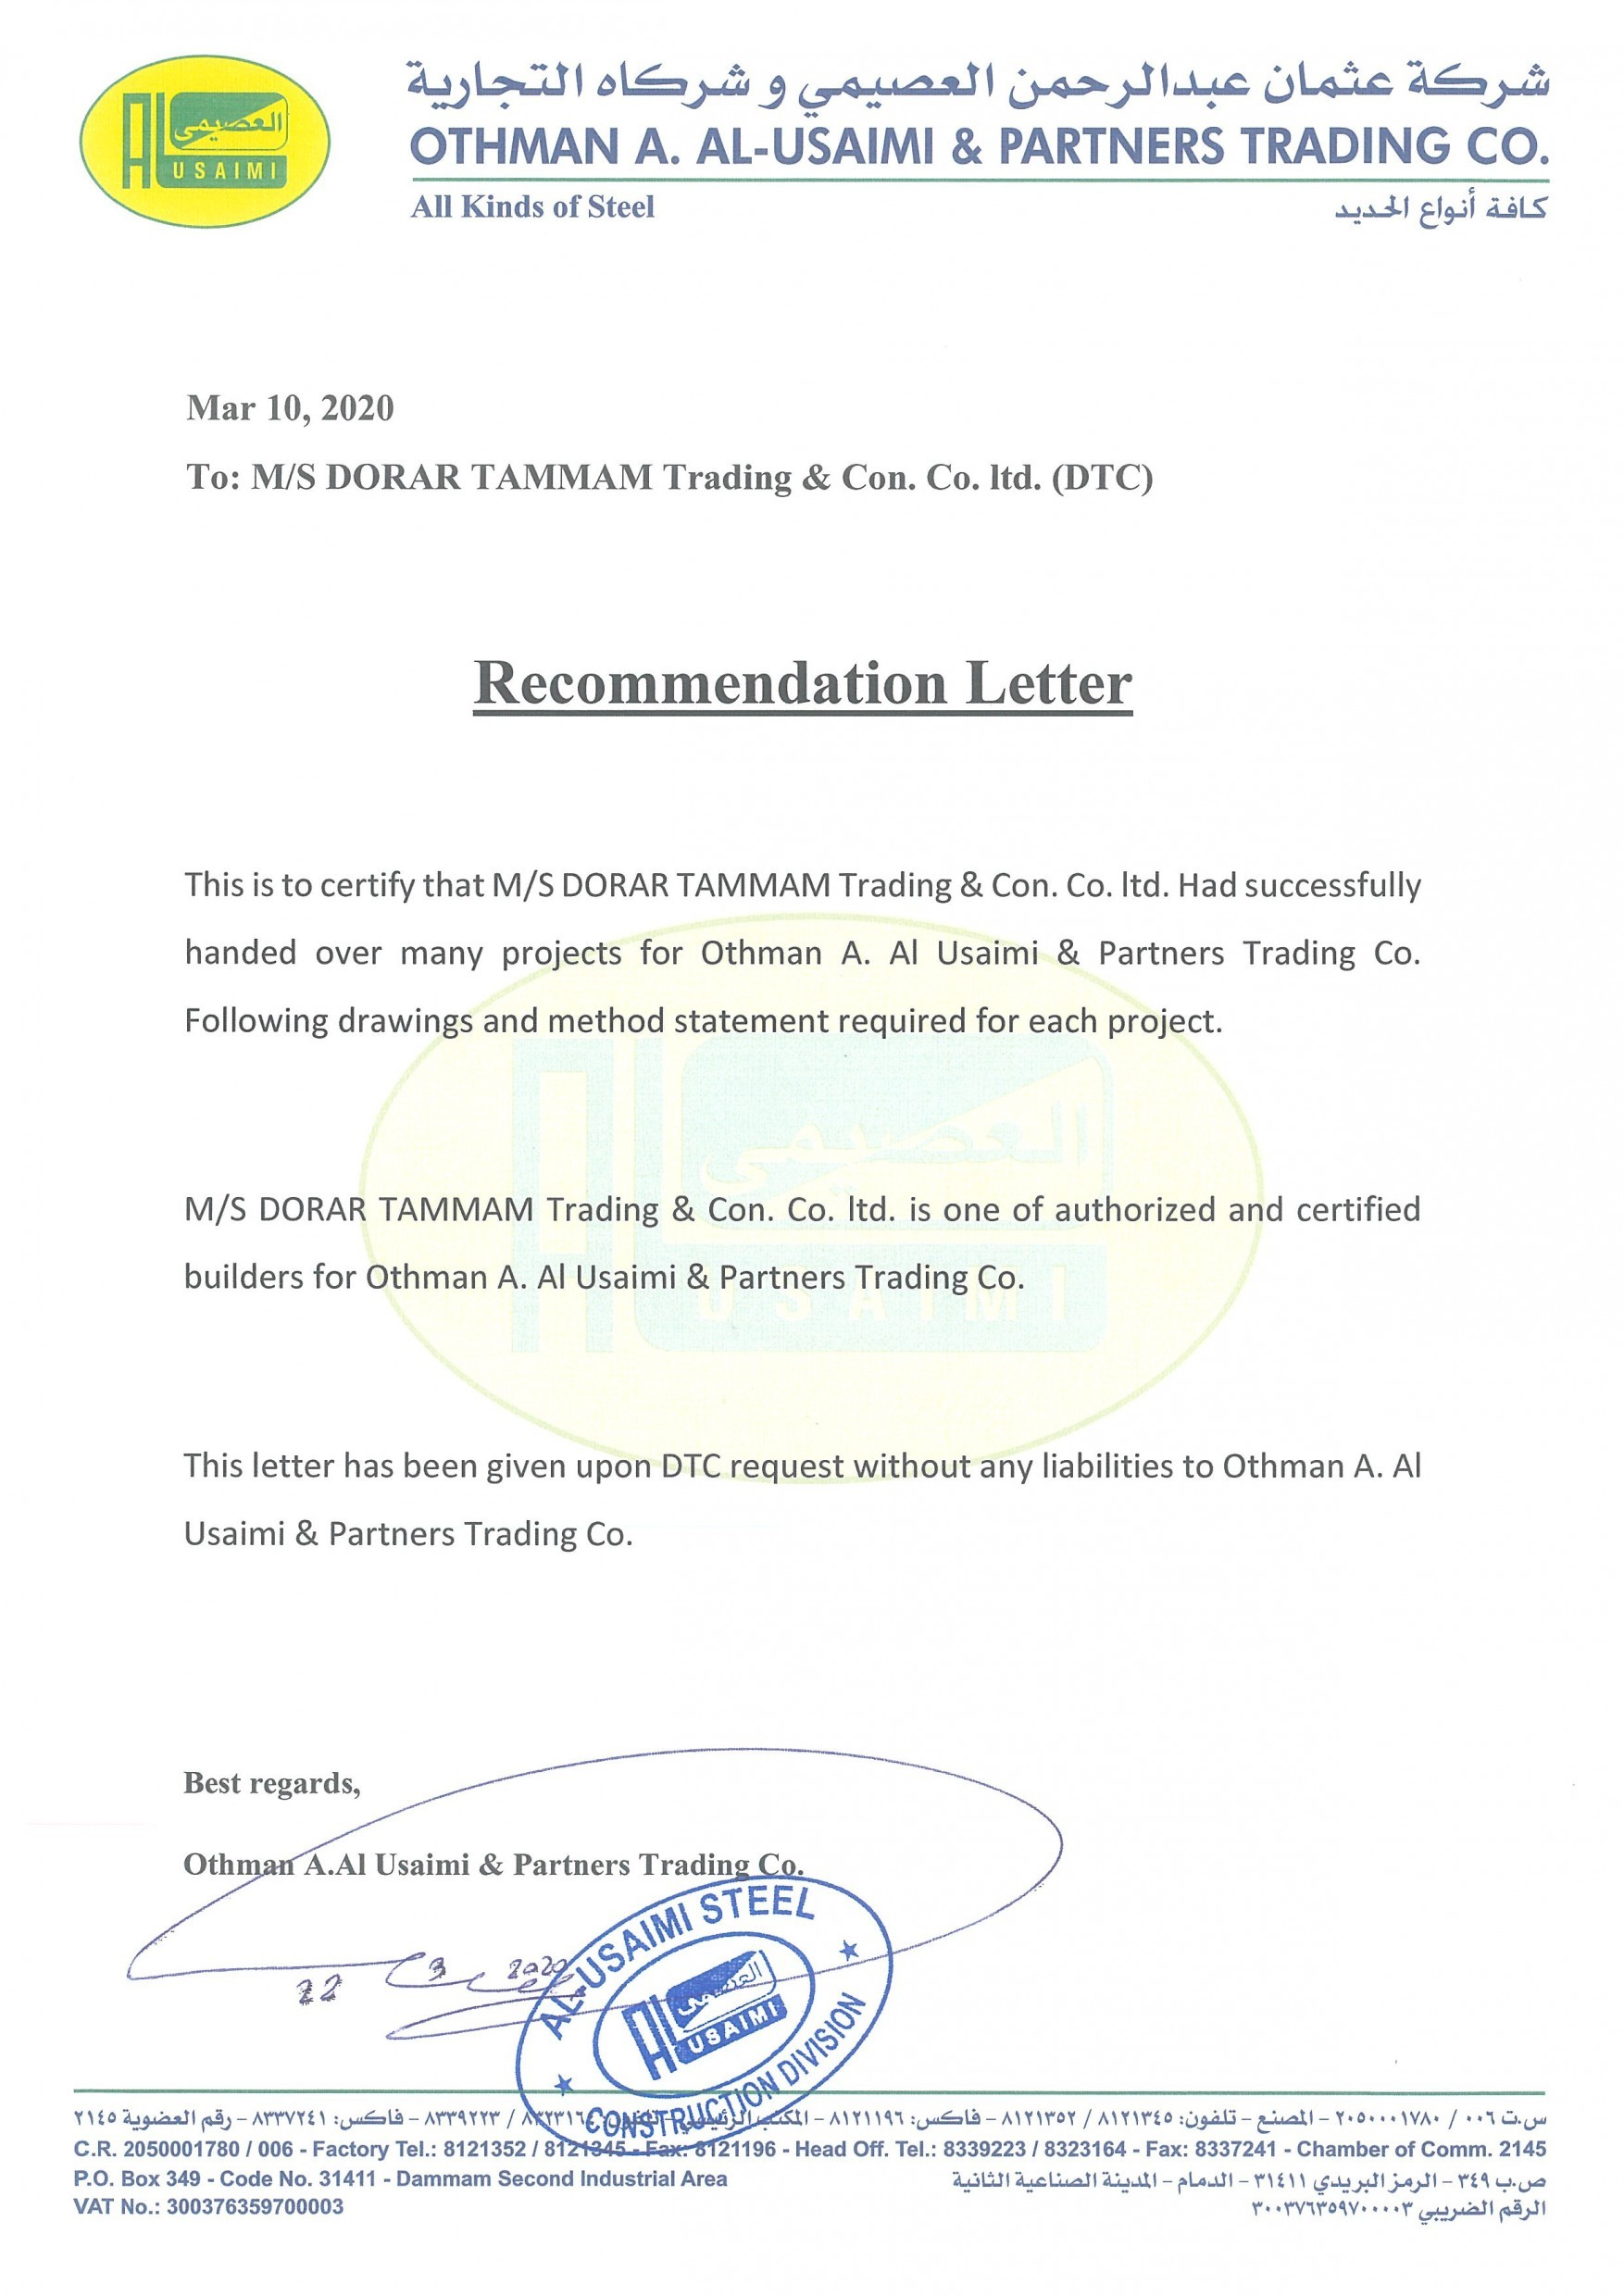 Recommendation letter for DTC1